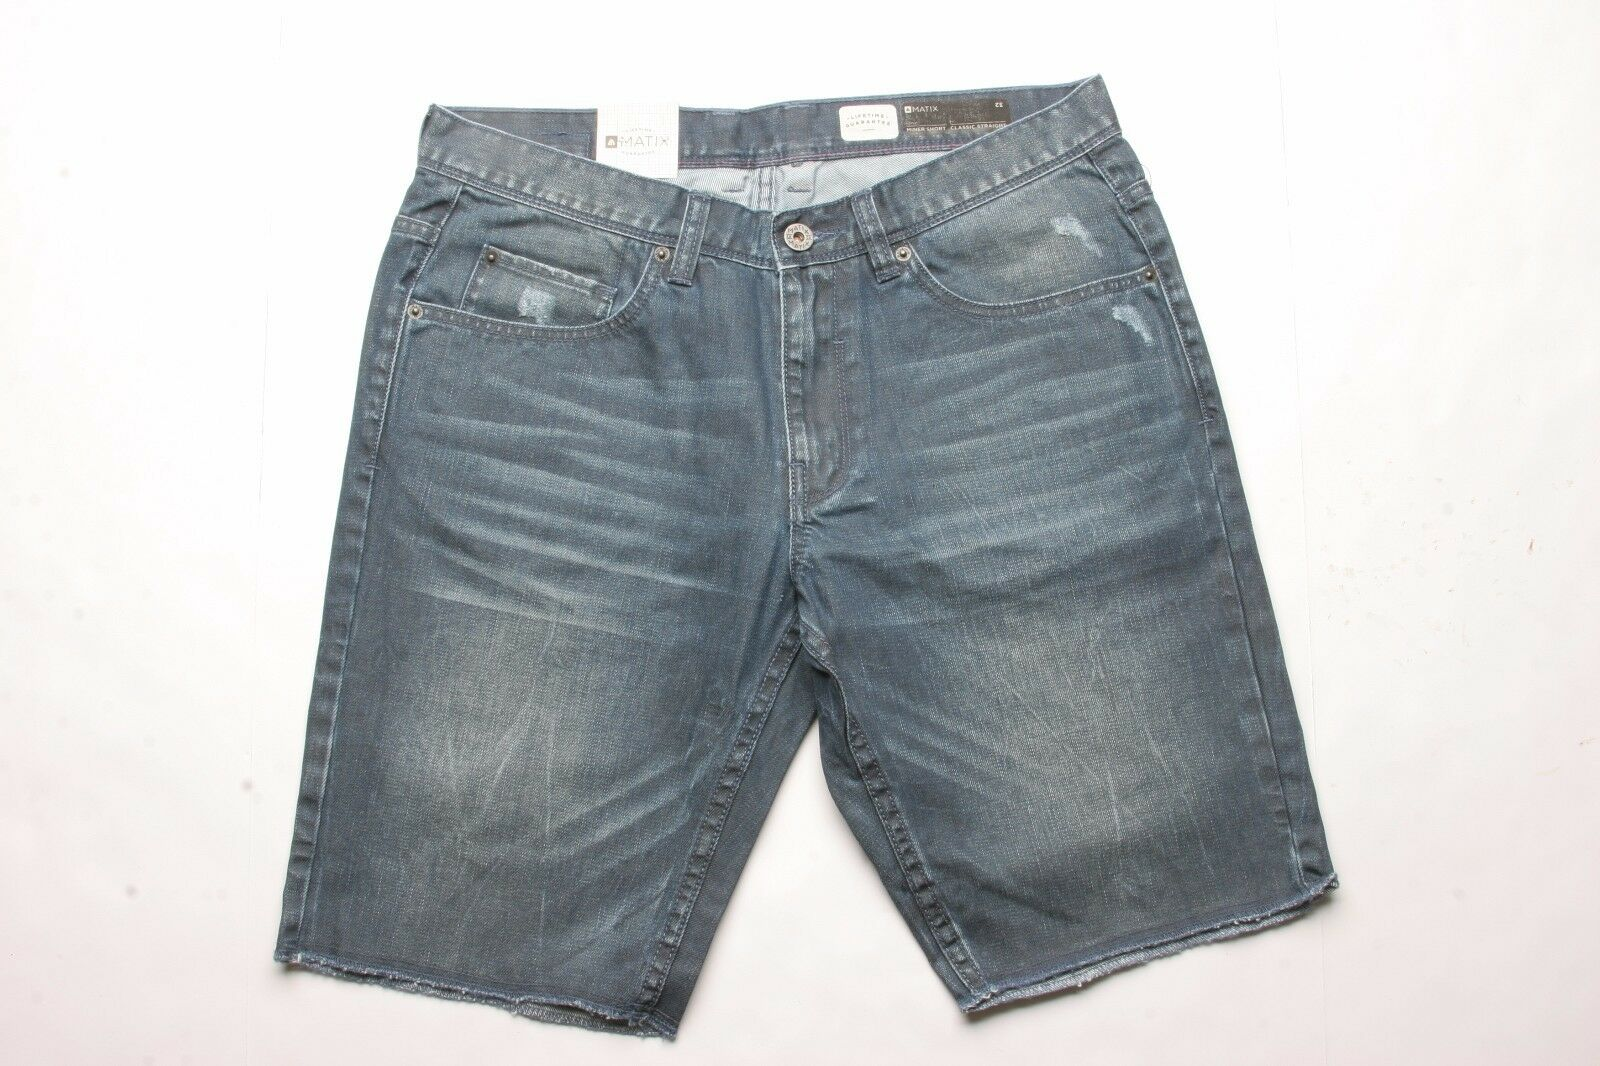 MATIX Miner Denim Short (32) Worn Roan